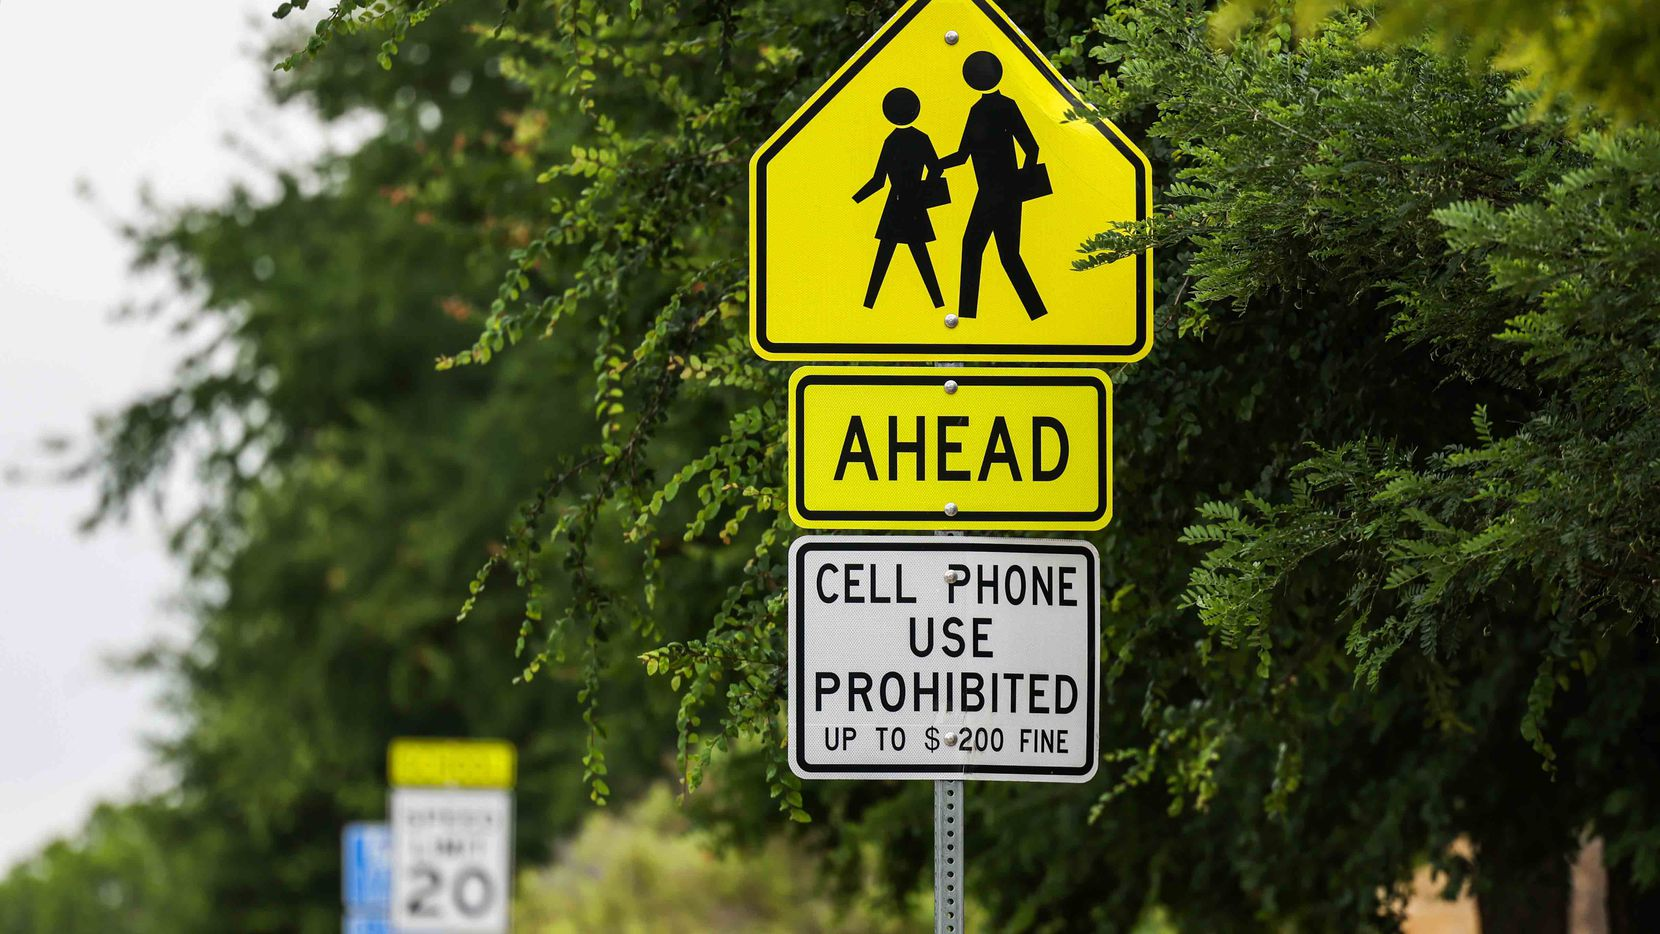 A warning notice not to use cellular devices around school grounds is displayed near Ereckson Middle School in Allen on Wednesday, June 9, 2021.